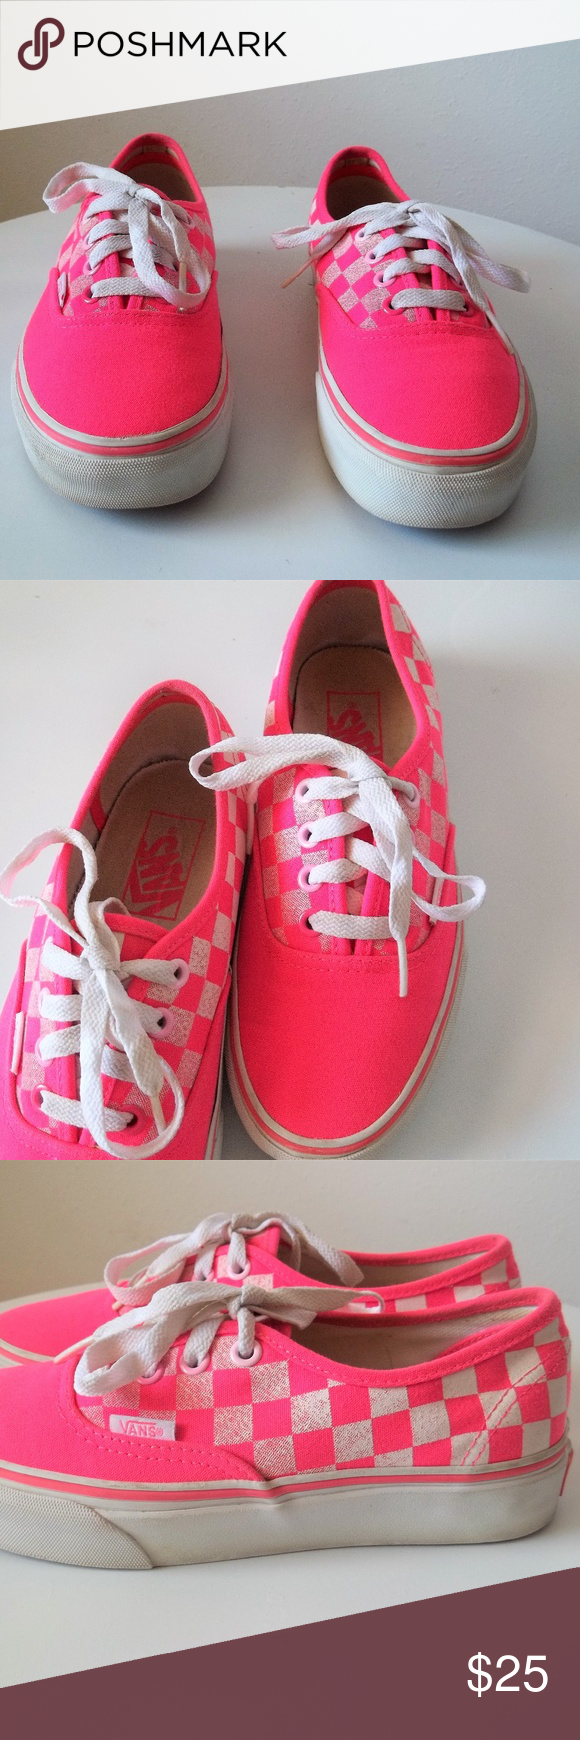 96b3c2349a VANS Off The Wall Hot Pink Checkered Shoes VANS Off The Wall Hot Pink  Checkered Shoes. Womens